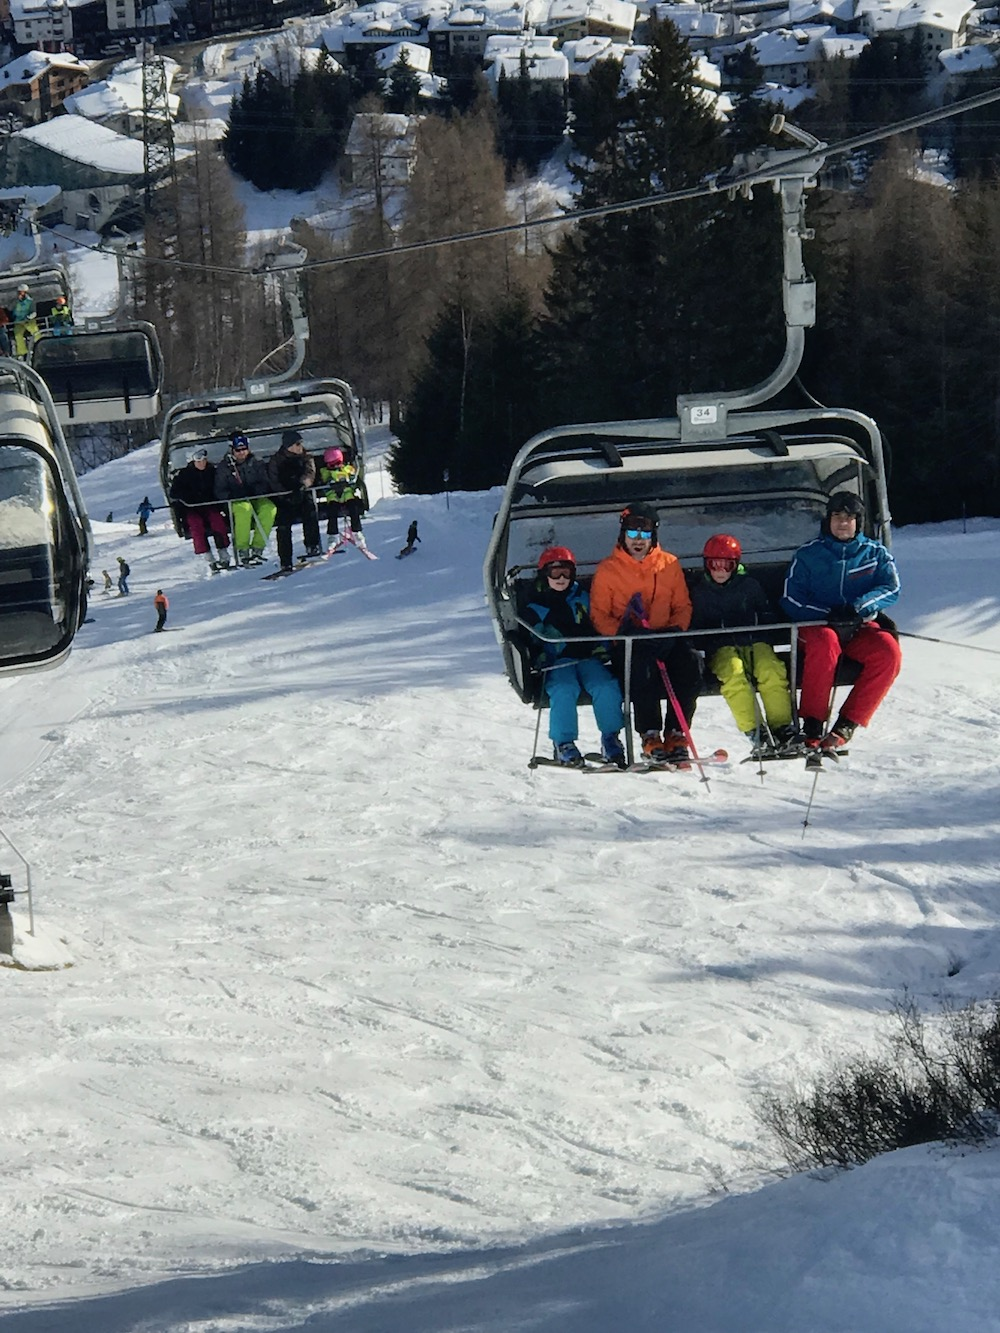 People in cable cars in St. Anton |curlytraveller.com